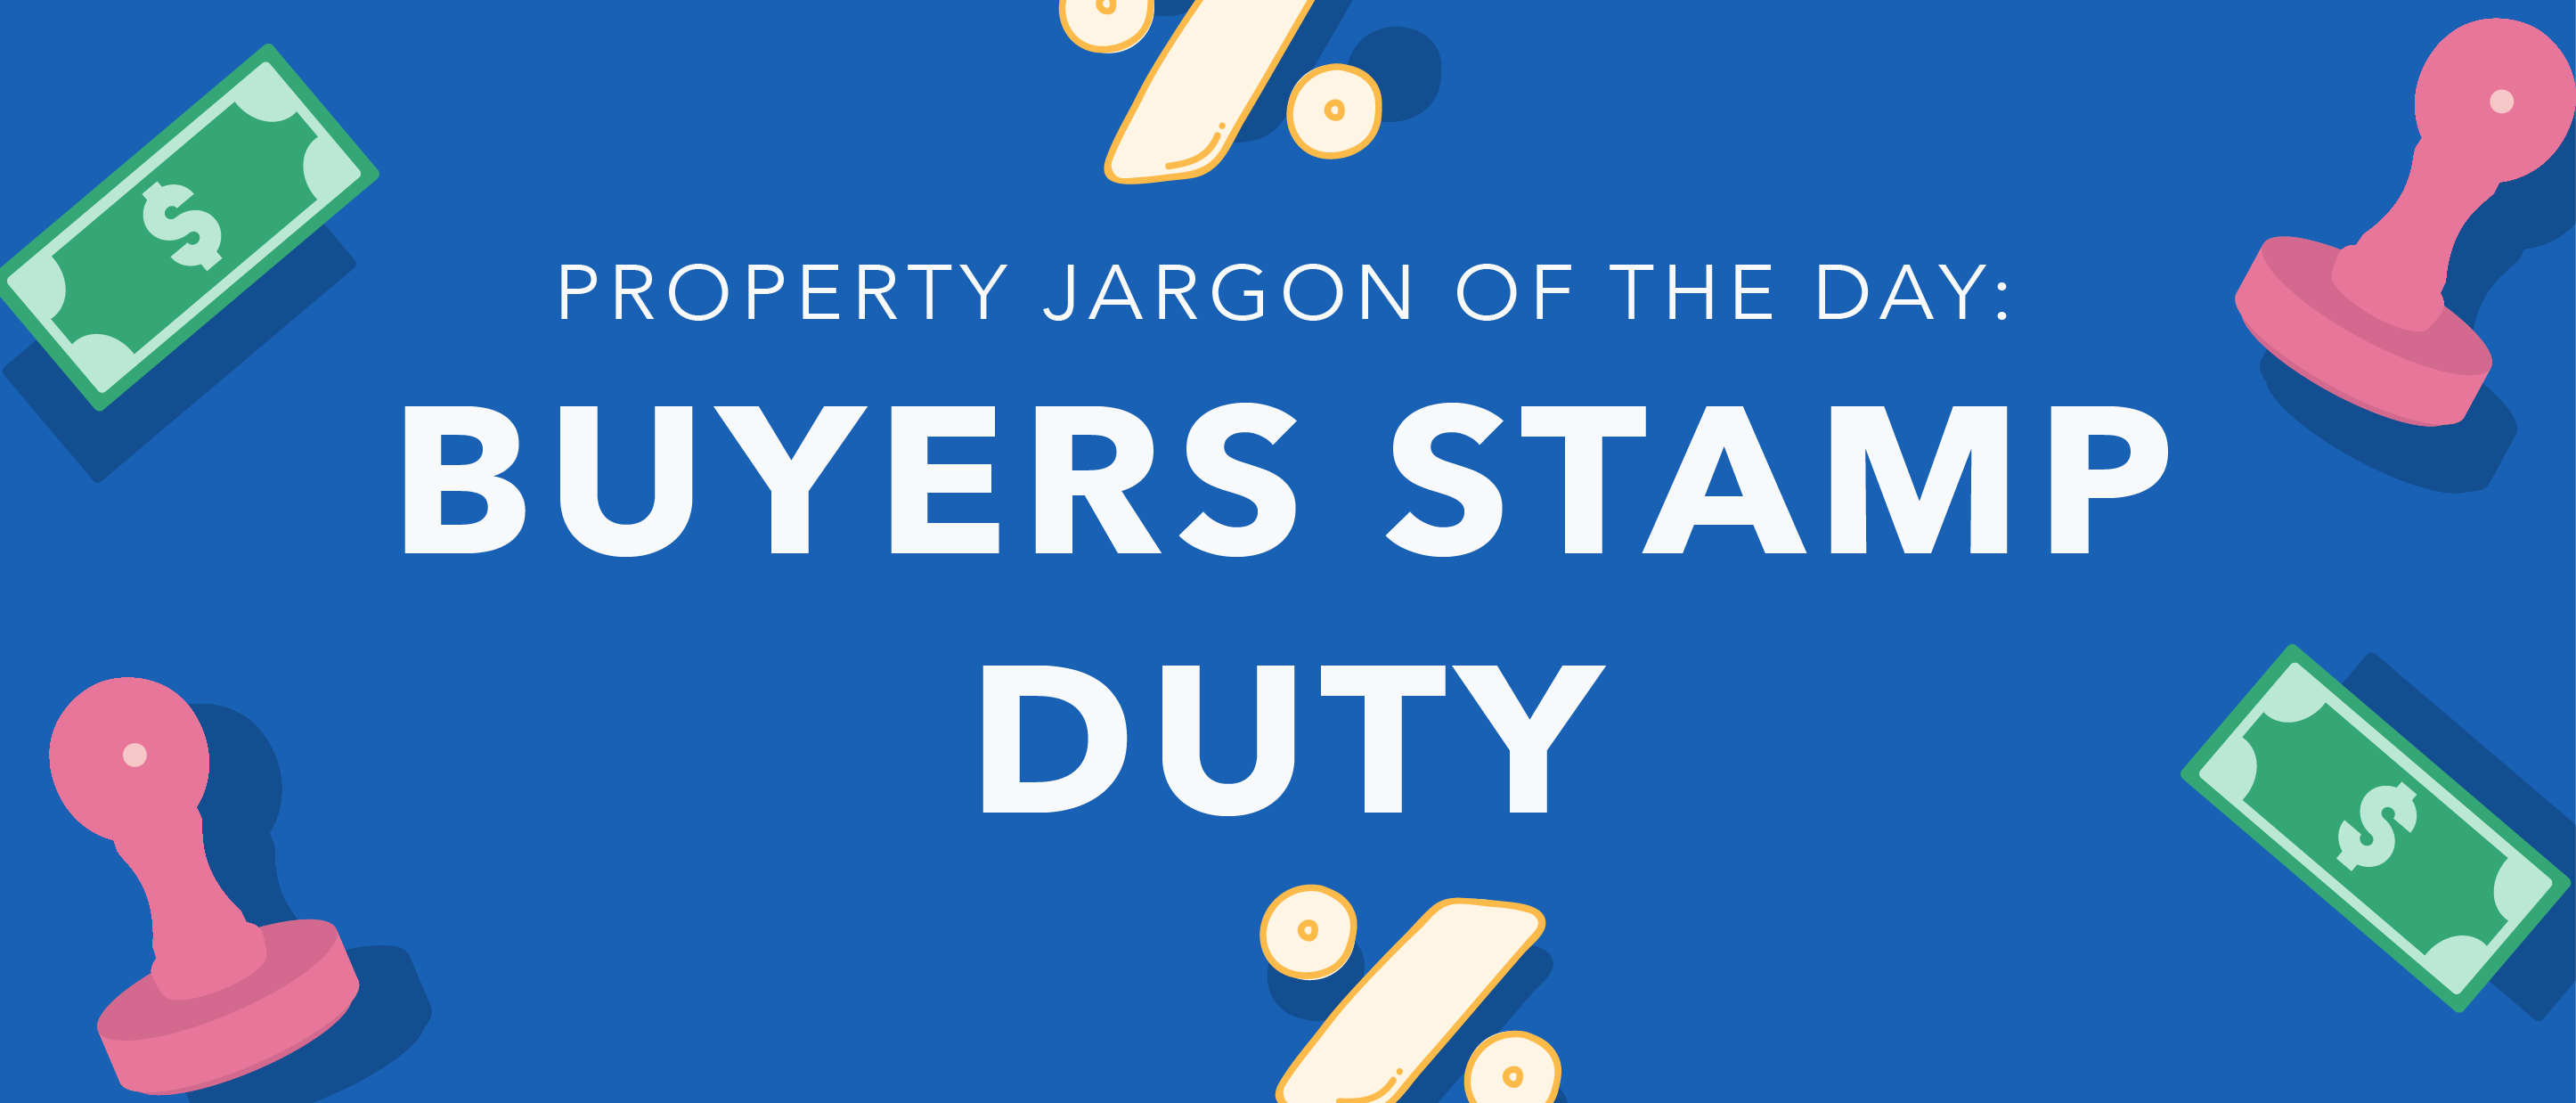 Property Jargon Of The Day Buyers Stamp Duty Bsd 99 Co